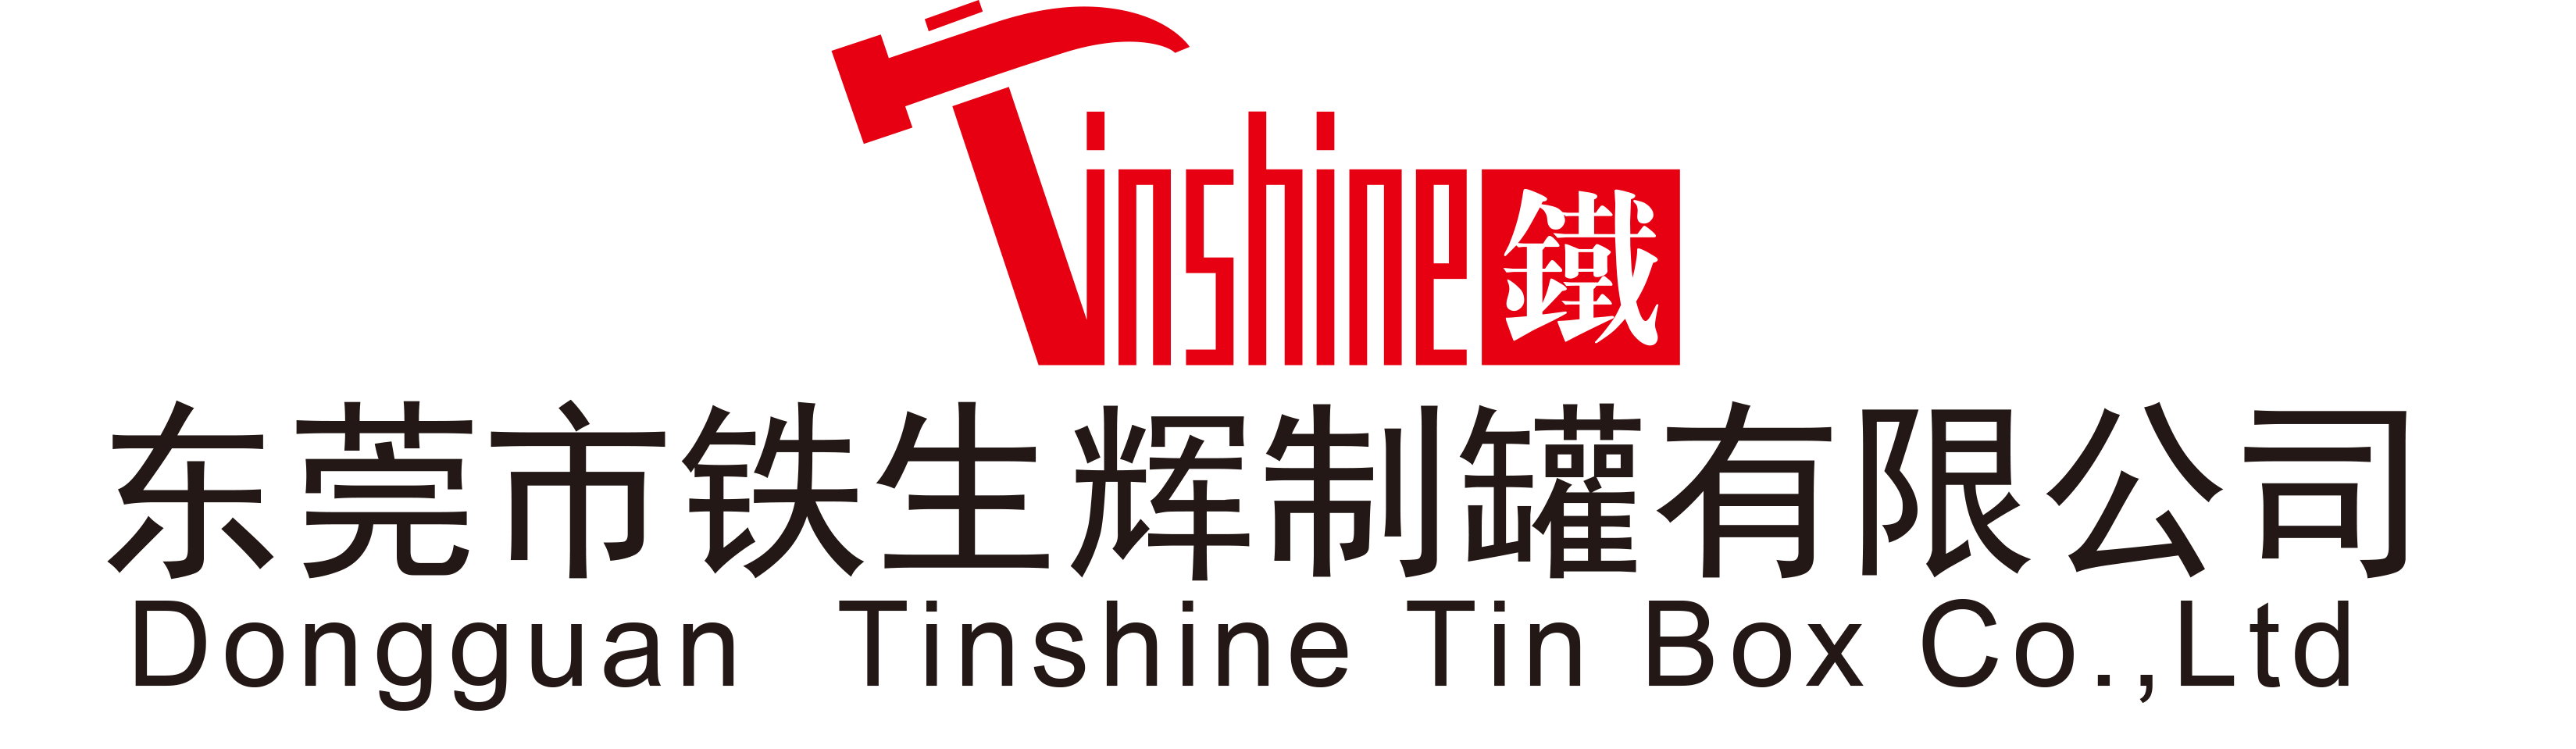 DongGuan Tinshine Tin Box Co.,Ltd.